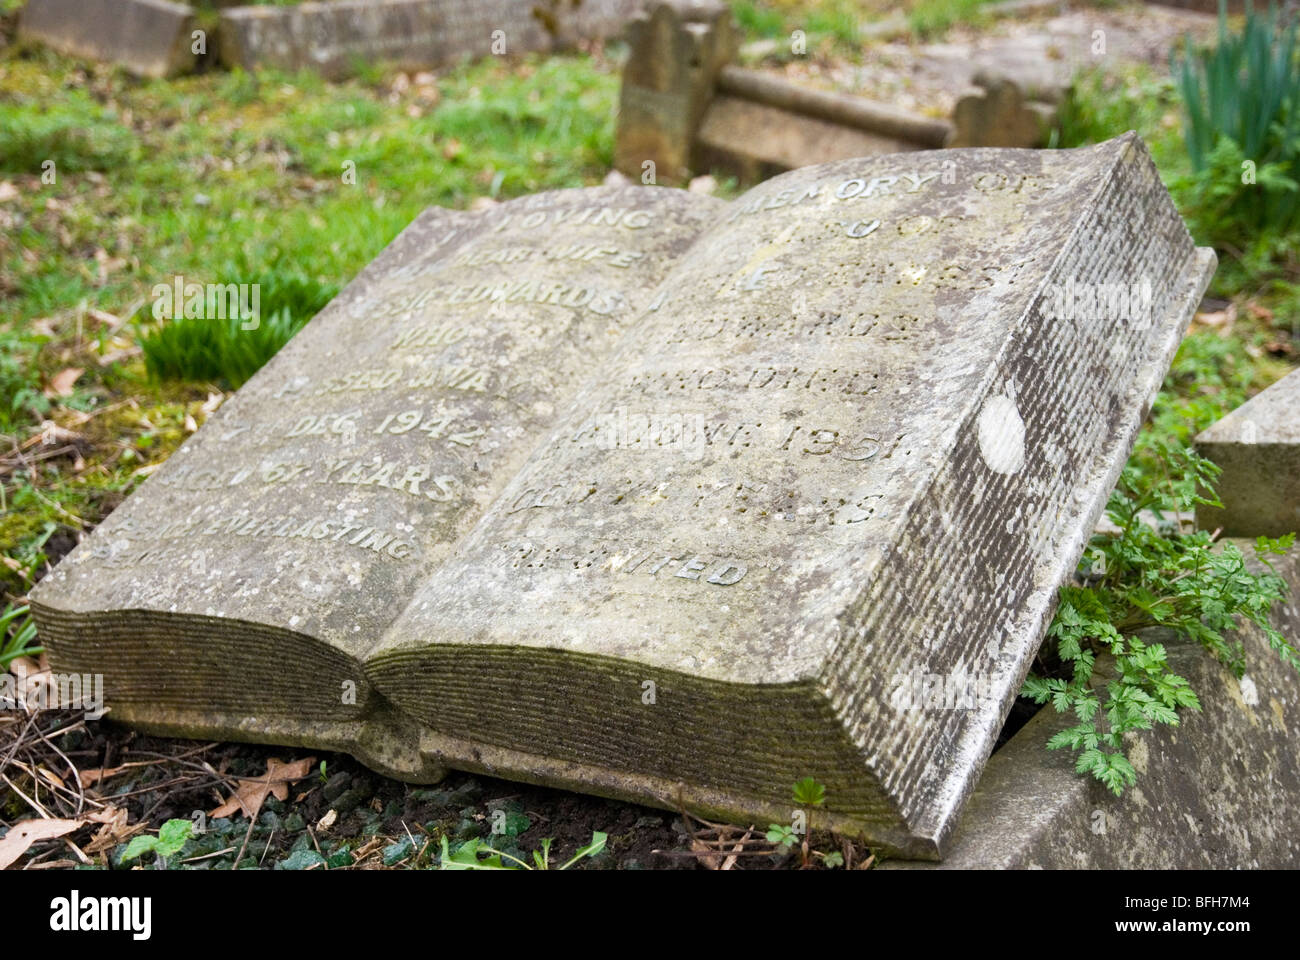 Stone book at Highgate cemetery in London England UK - Stock Image